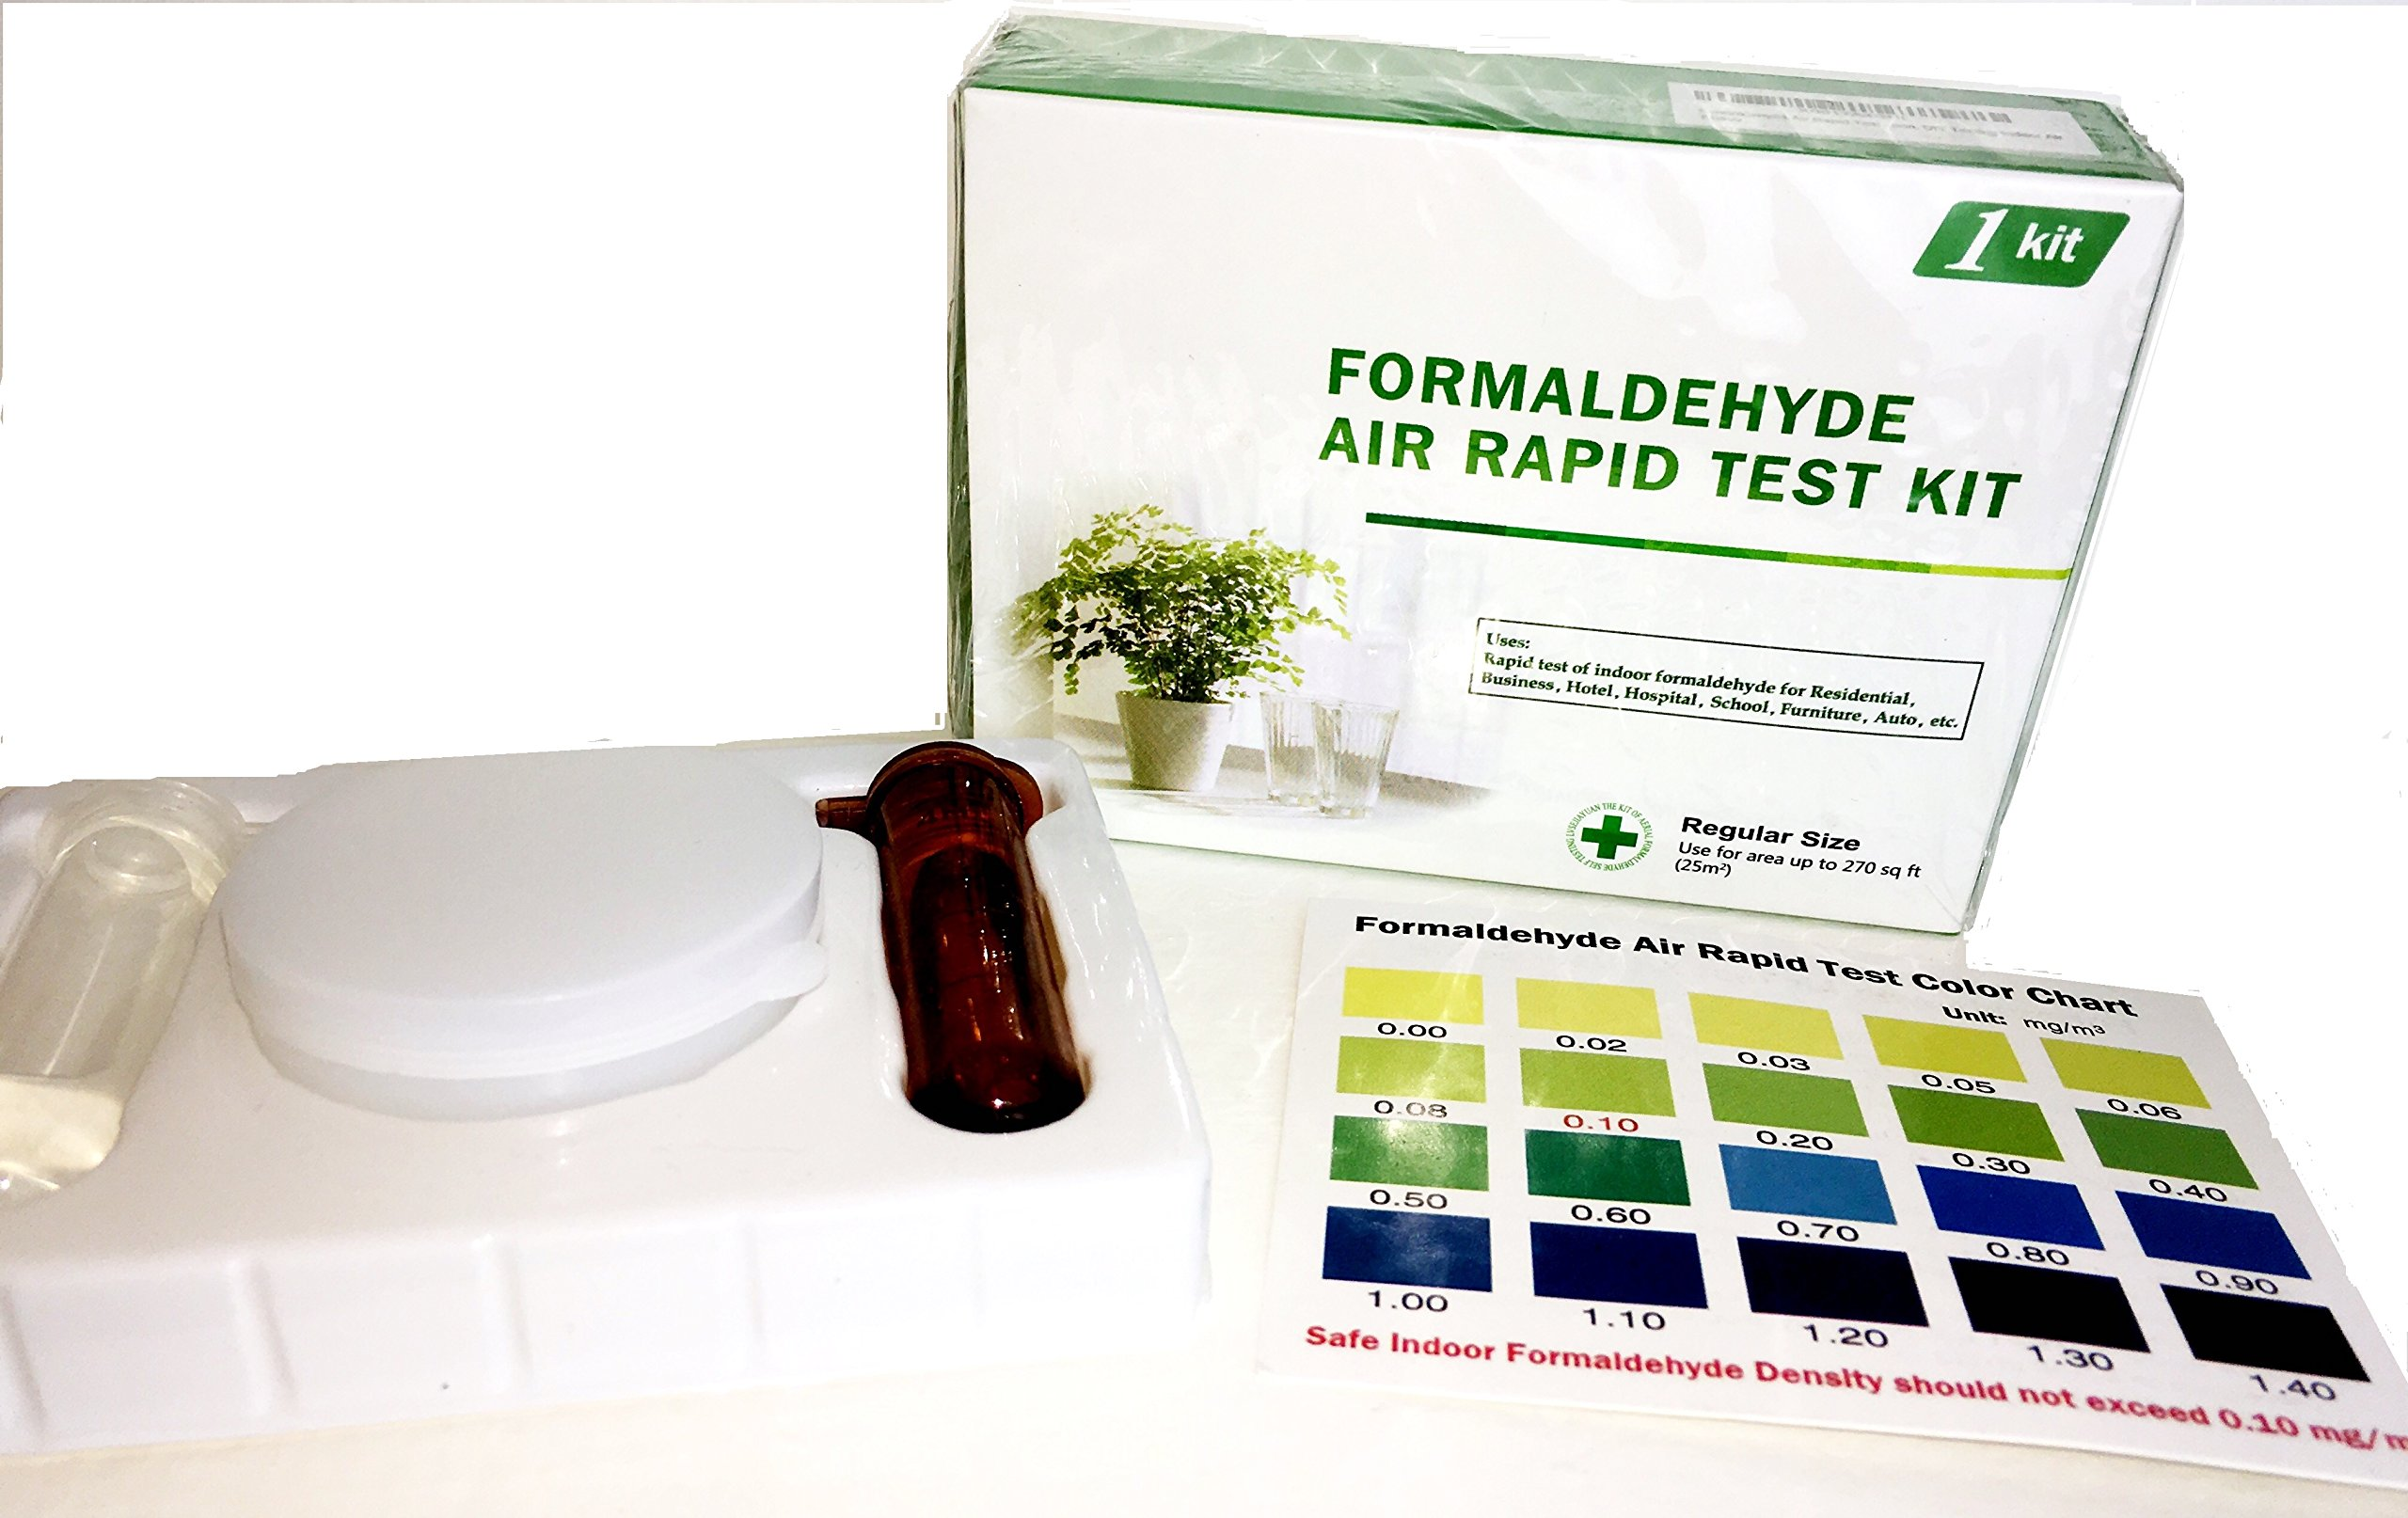 Formaldehyde Air Rapid Test Kit, 5th Generation, DIY Testing Indoor Air